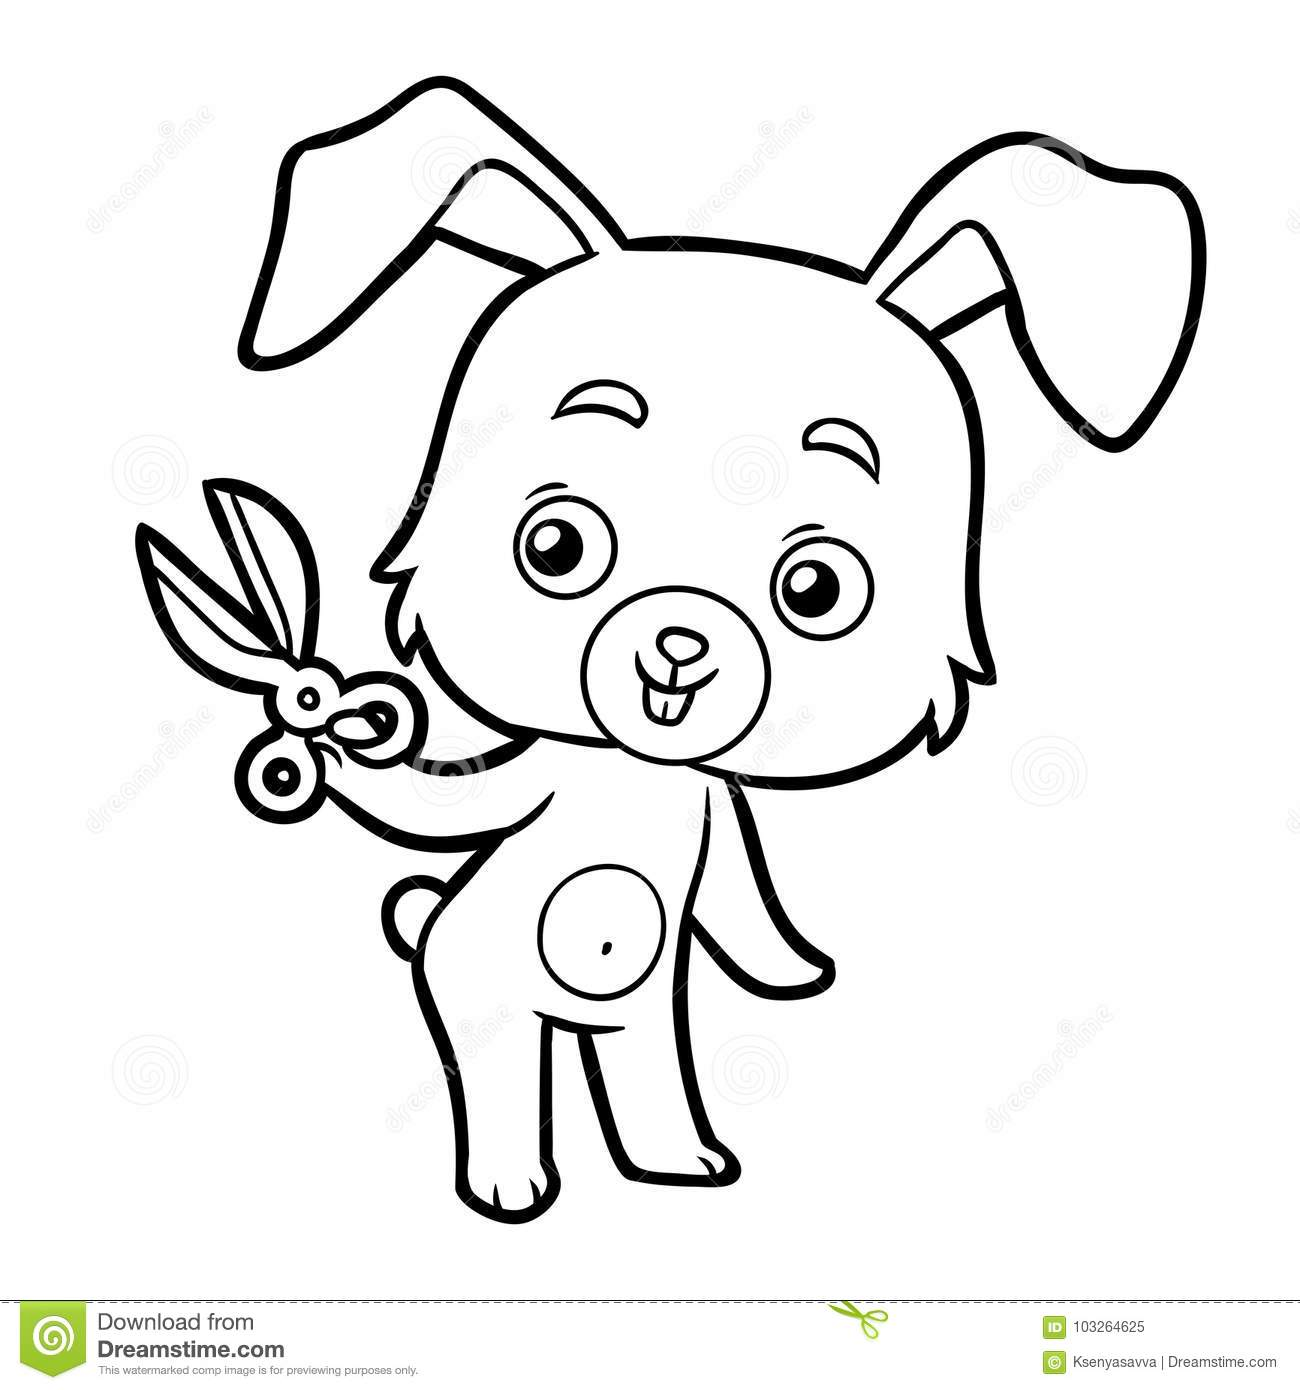 Coloring Book Rabbit And Scissors Stock Vector Illustration Of